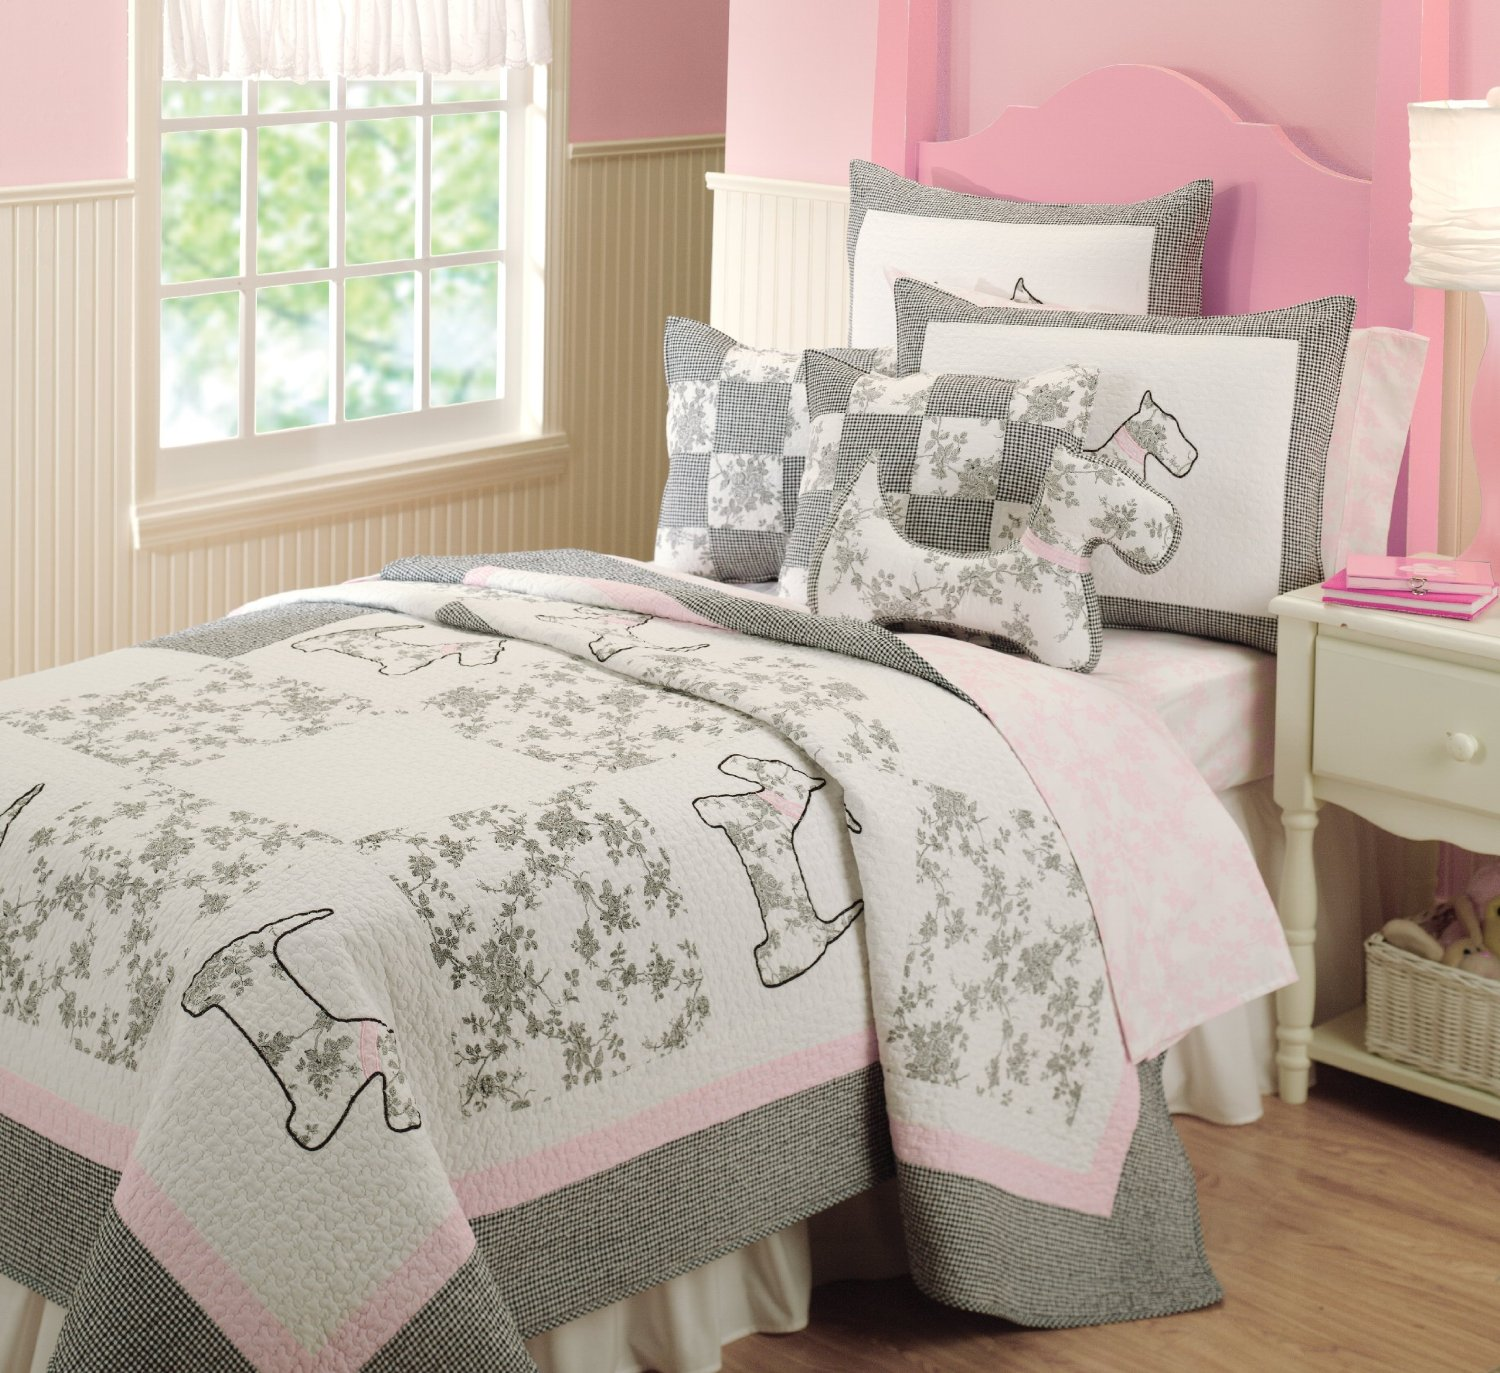 Complete A Dog Loveru0027s Bedroom With This Scottie Dog Quilt Set |  Petslady.com